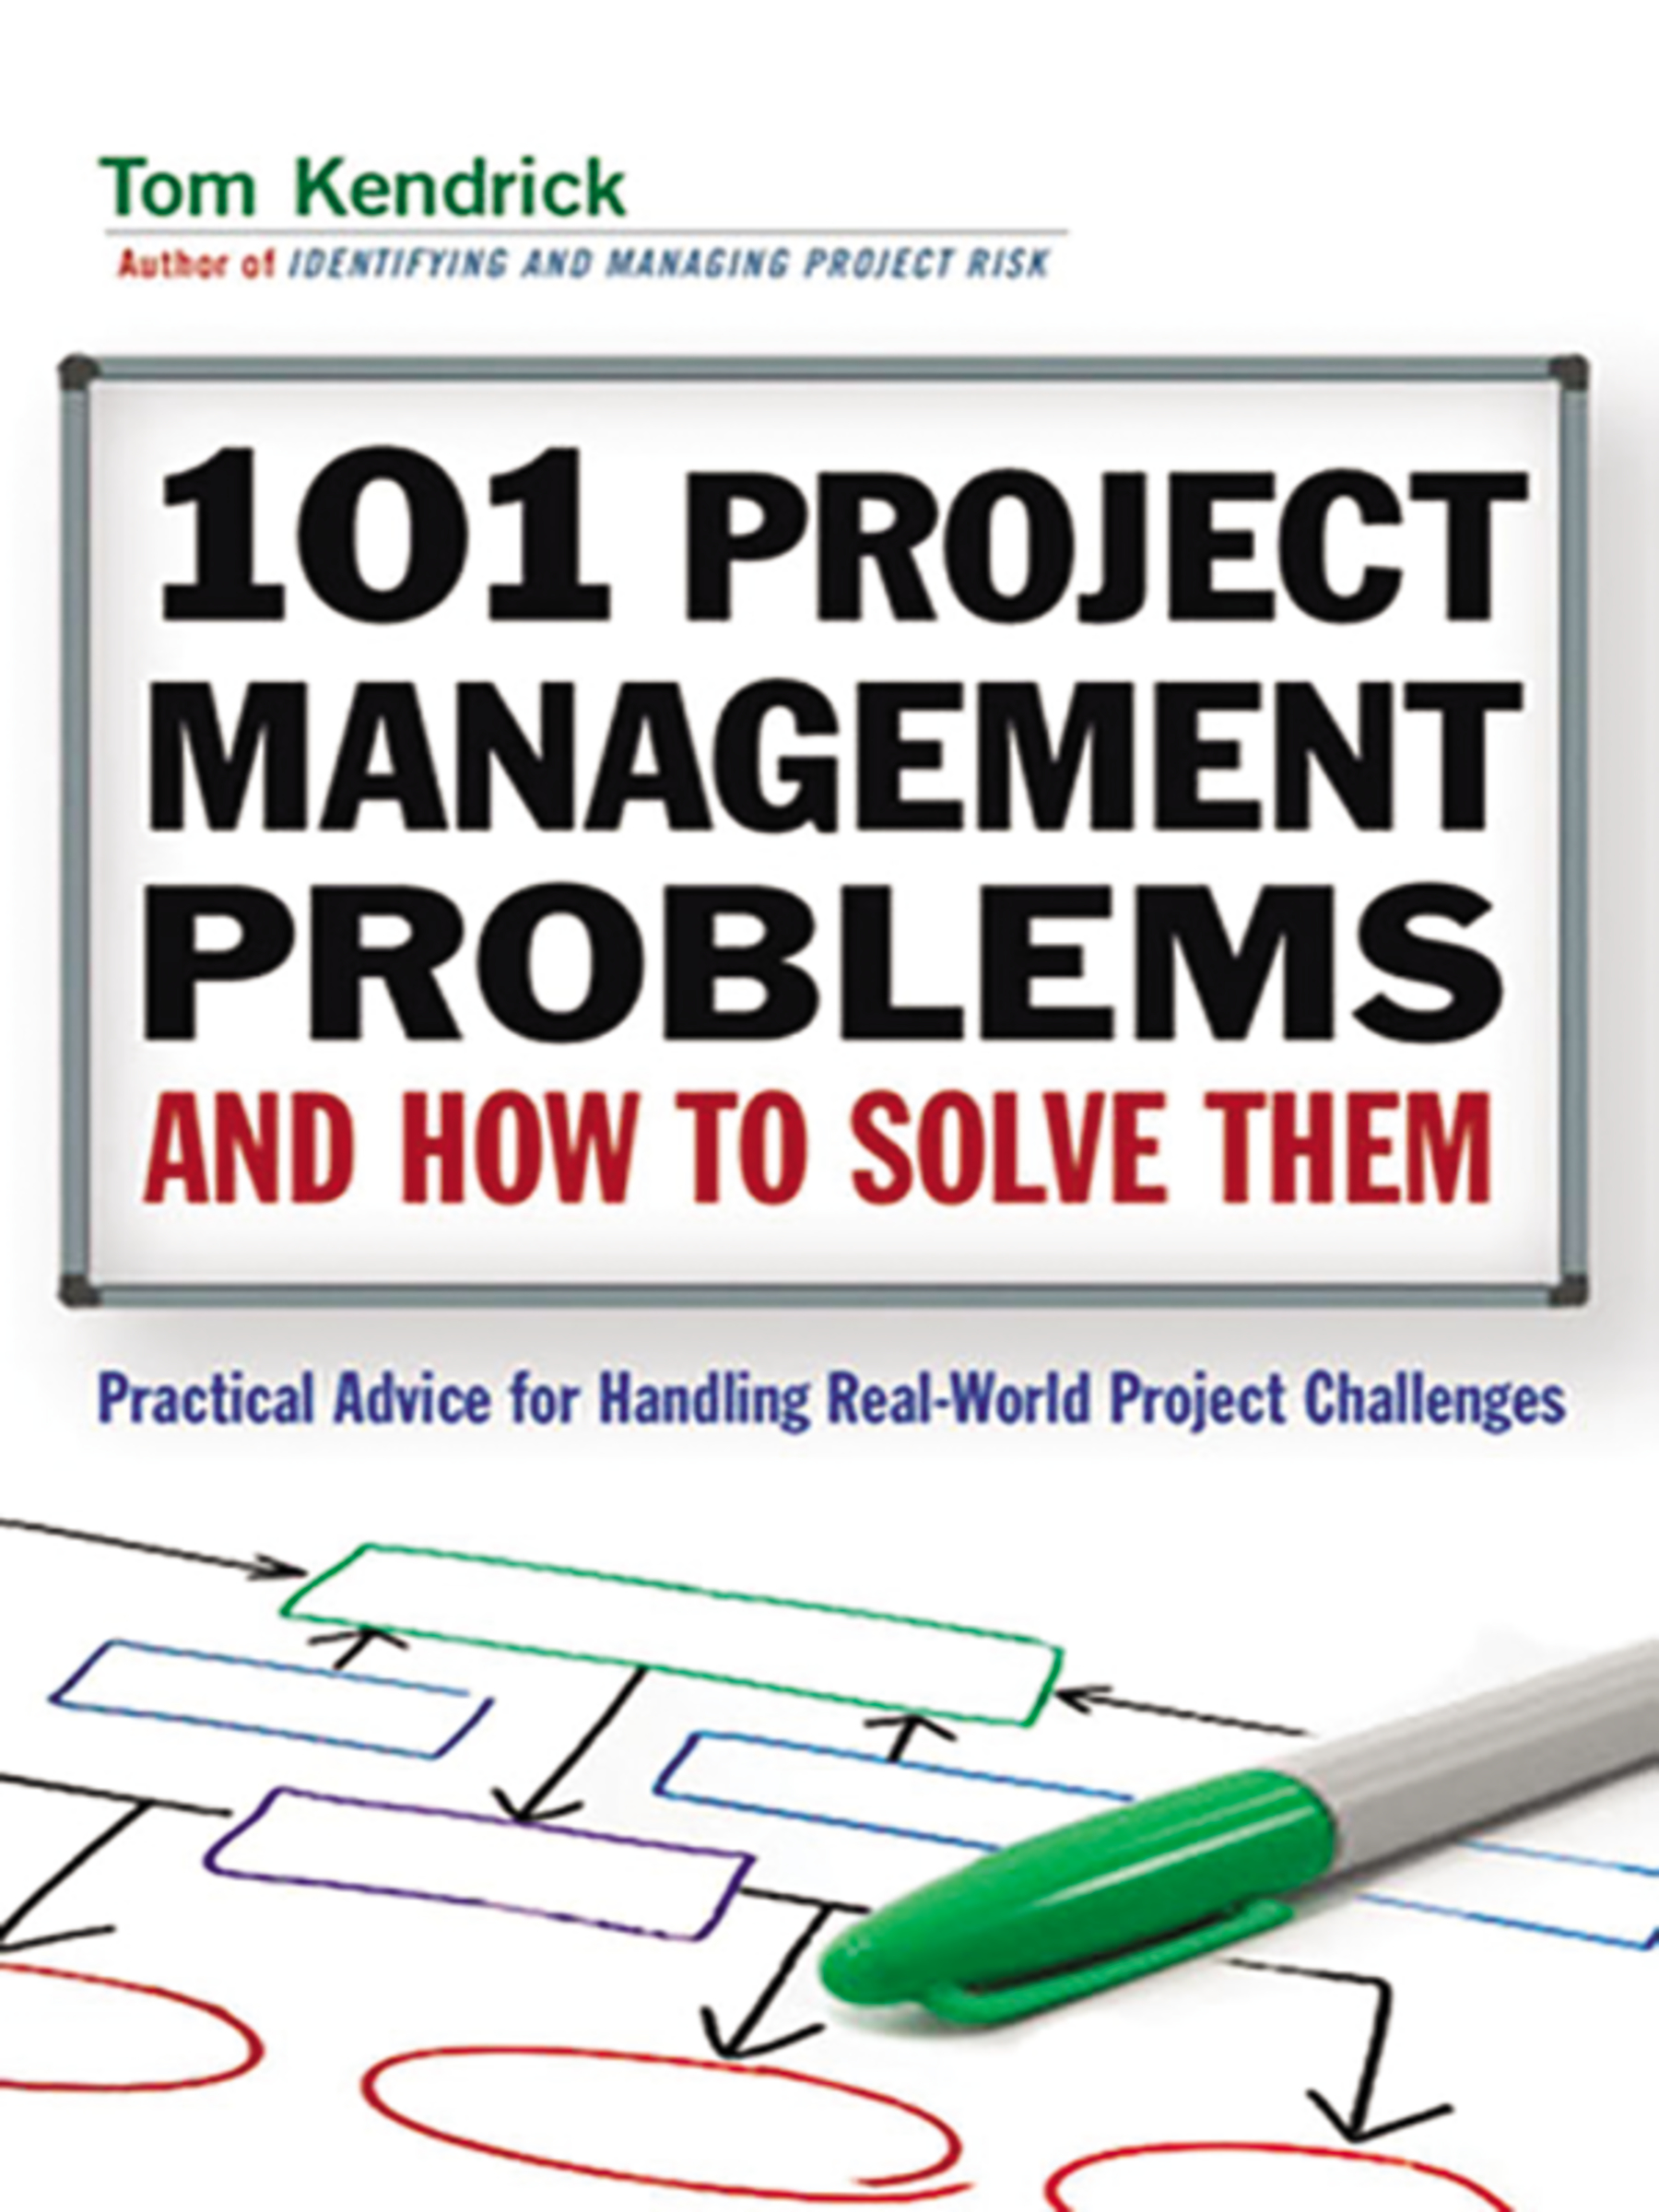 101 project management problems and how to solve them practical advice for handling real-world project challenges cover image